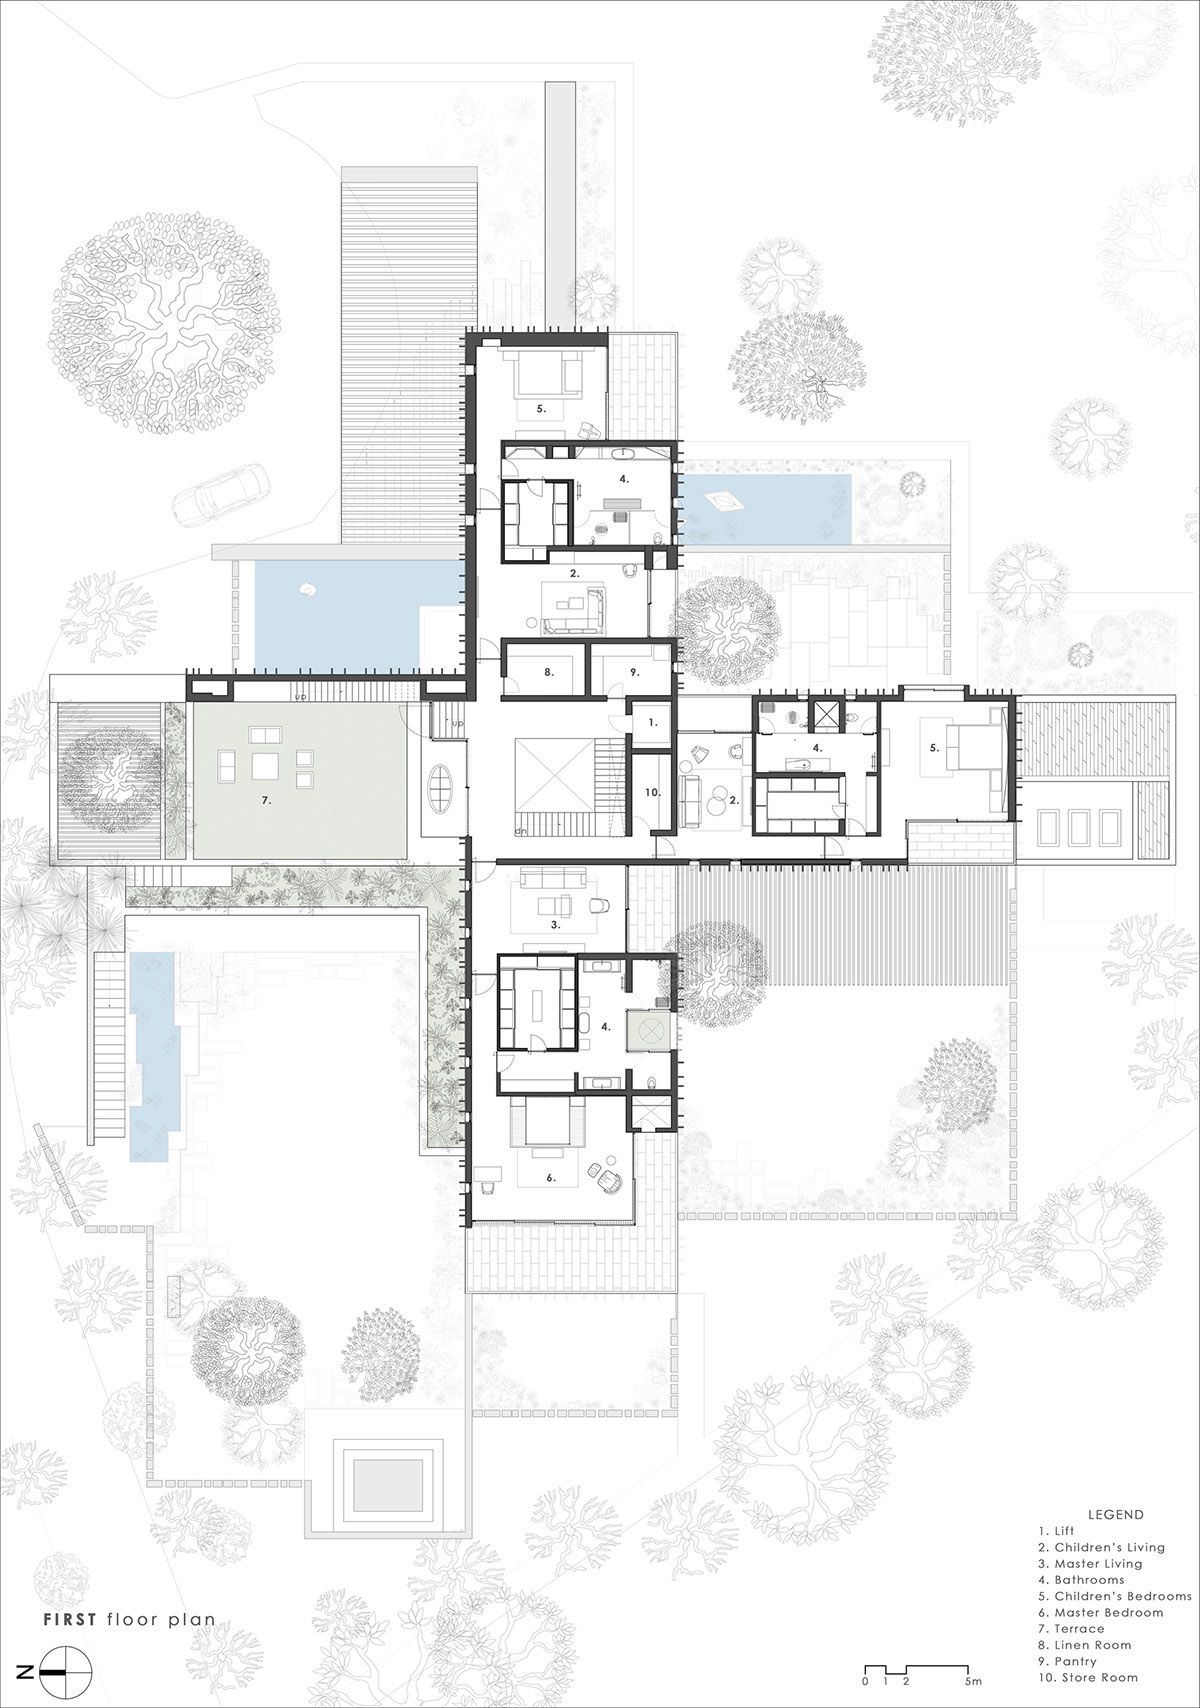 Cross Shaped Modern Home In Peaceful Landscaped Gardens Architectural Floor Plans Floor Plan Layout Architect Design